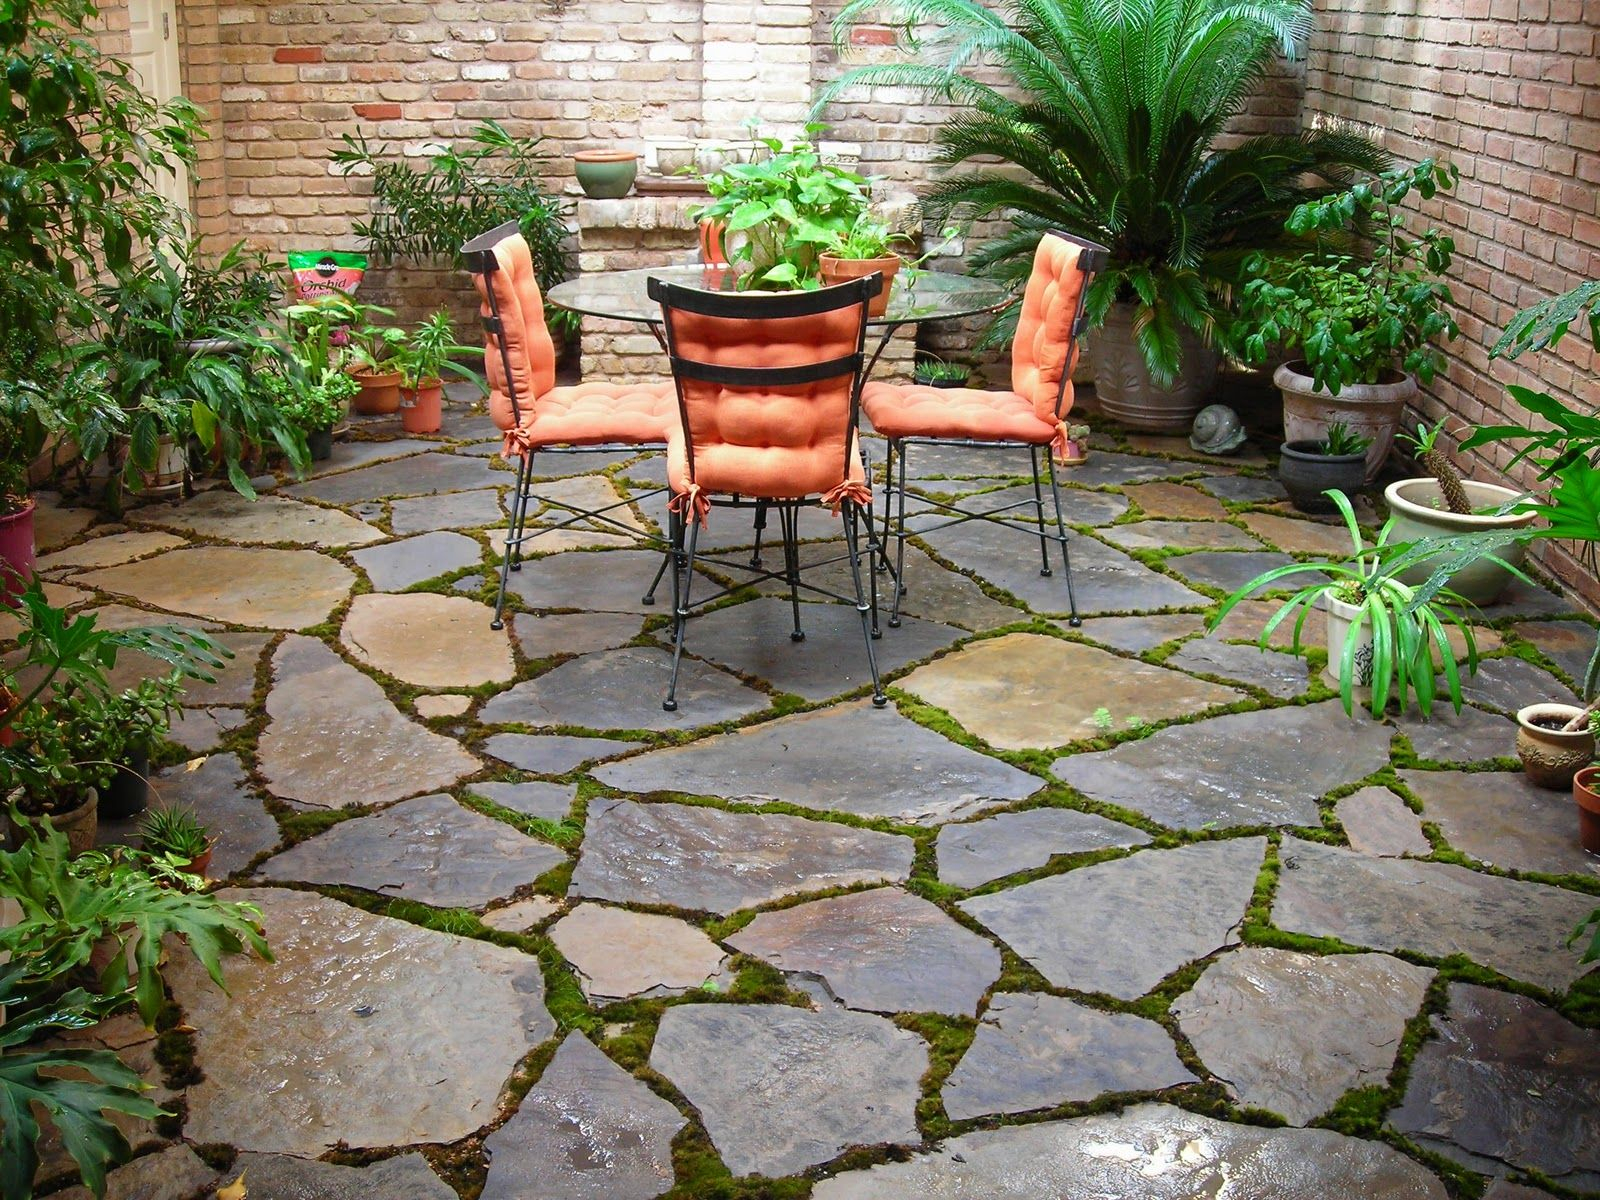 20 Best Stone Patio Ideas For Your Backyard Garden Designs within Backyard Stone Patio Ideas